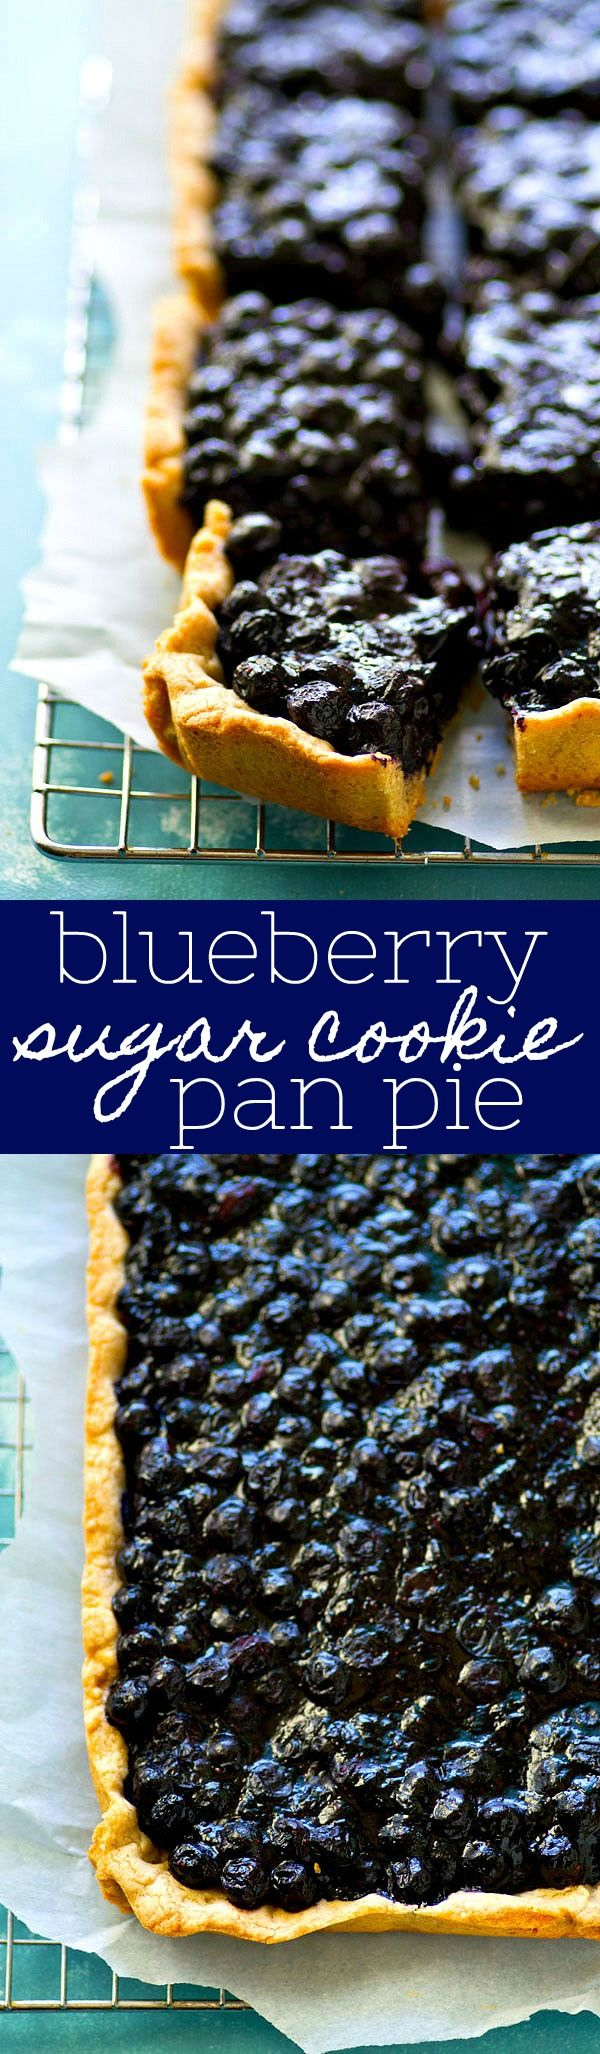 Classic blueberry pie gets a makeover into EASY pan pie form with the most amazing soft sugar cookie crust and sweet blueberry filling.--- the easiest way to make pie this summer!